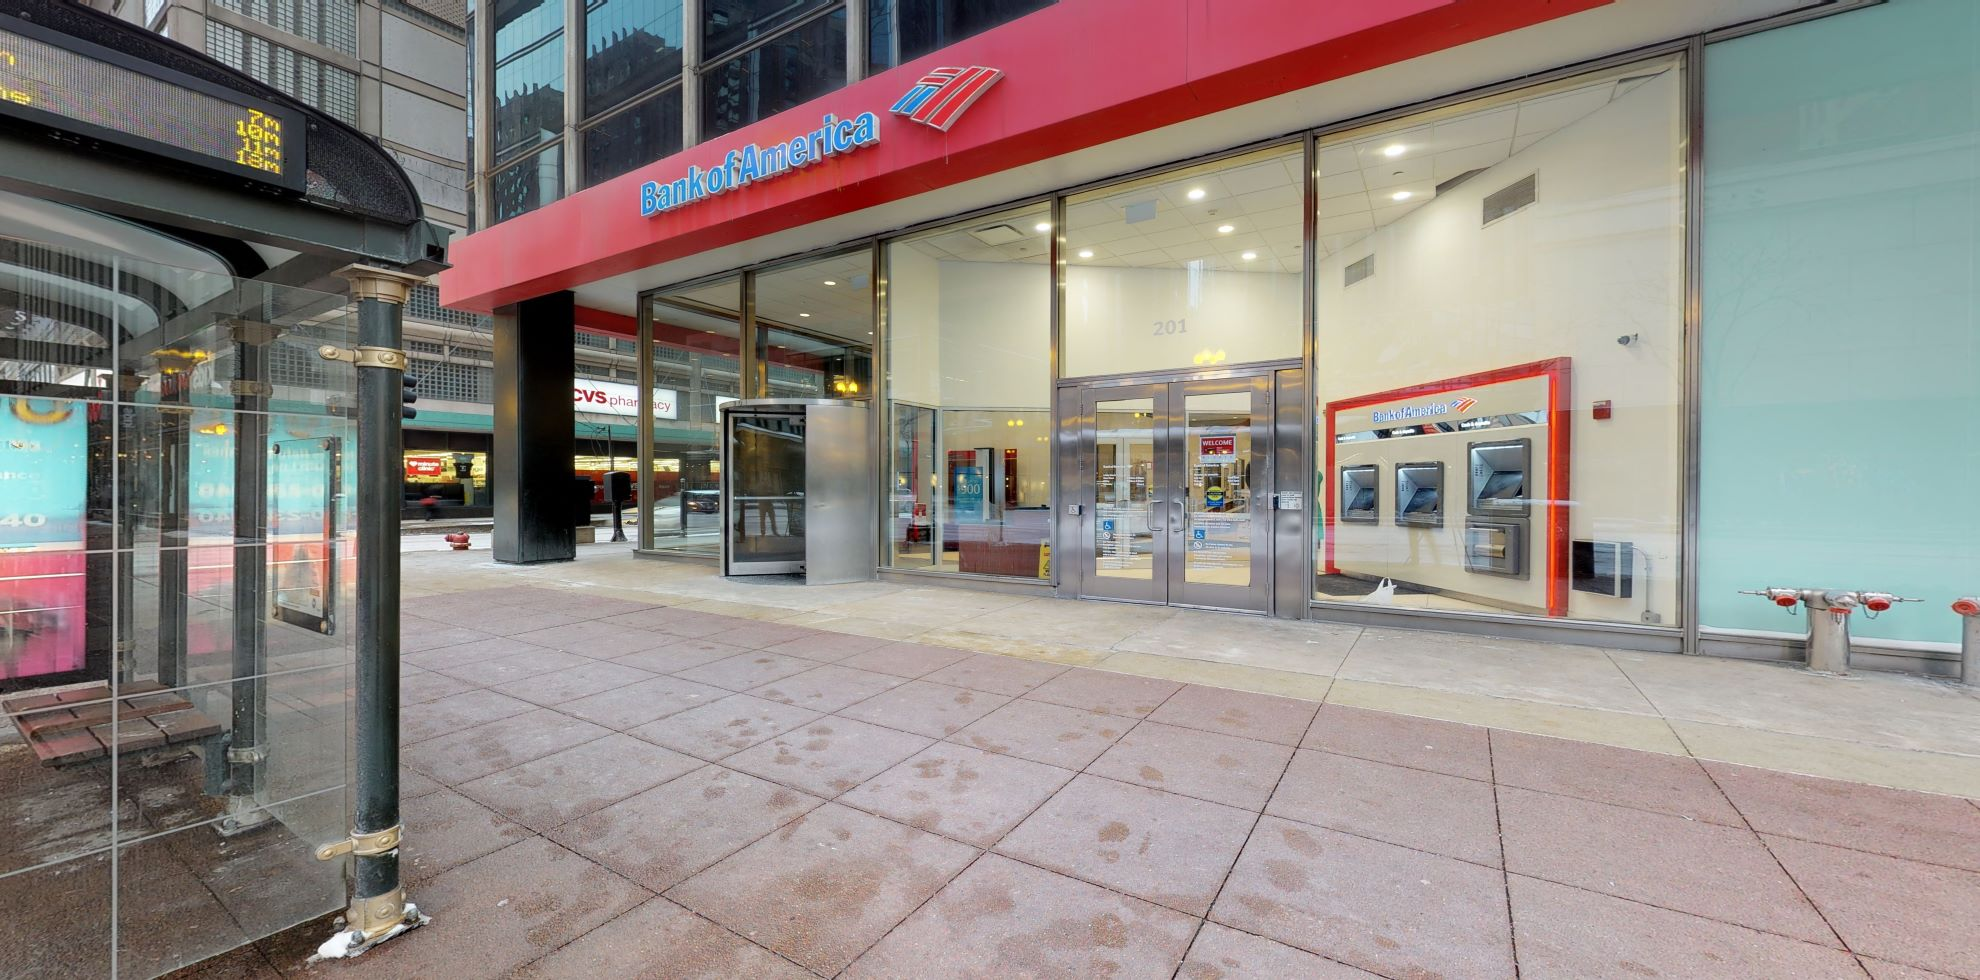 Bank of America financial center with walk-up ATM | 201 S State St, Chicago, IL 60604